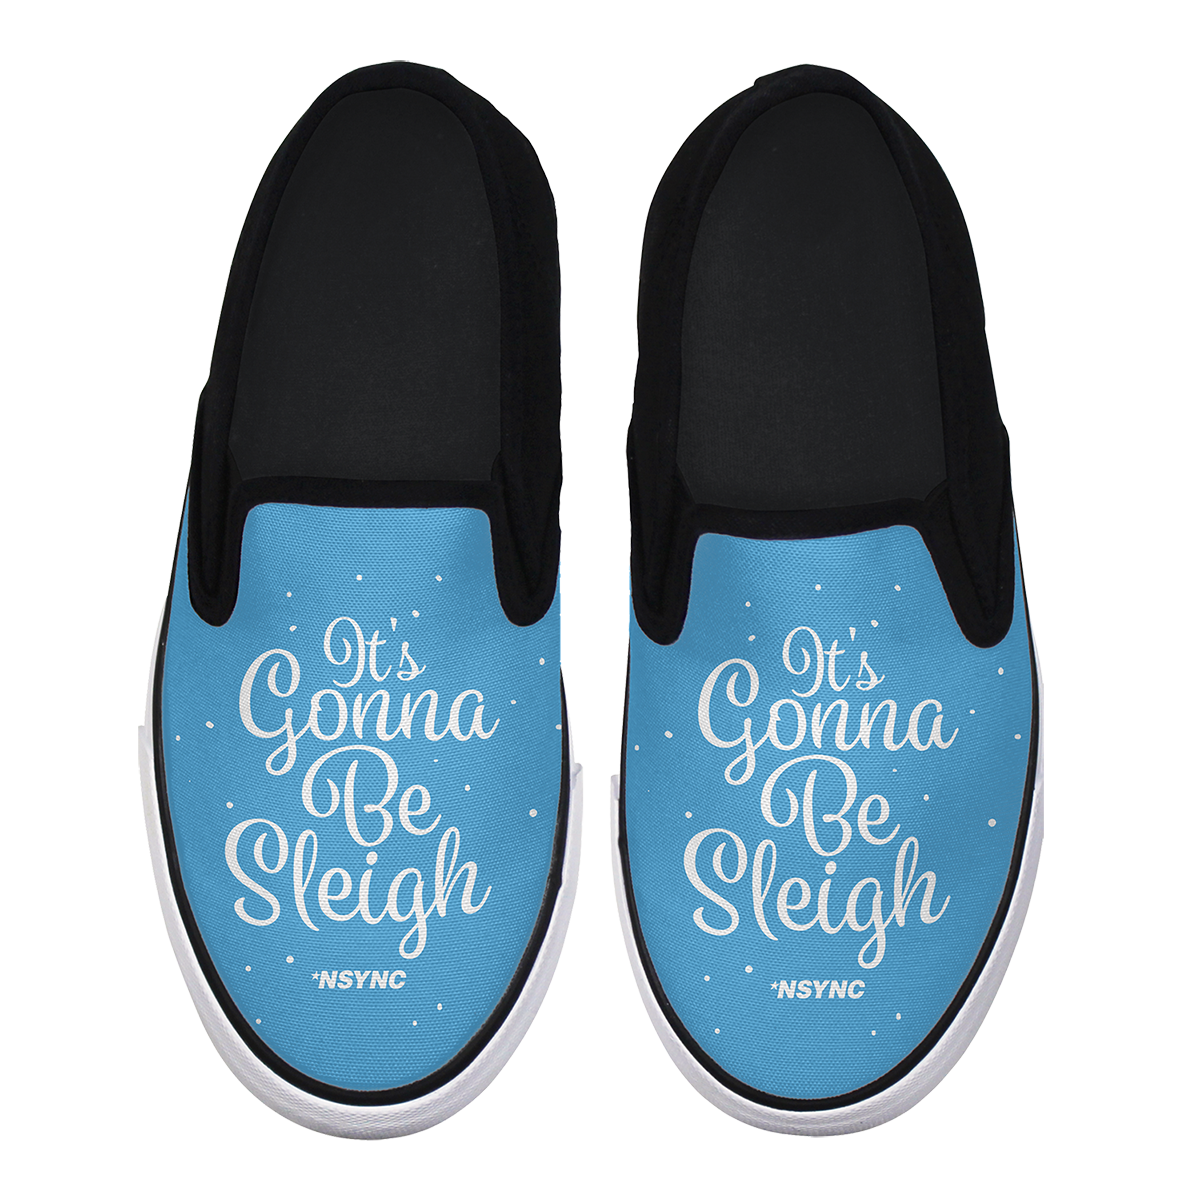 NSYNCItsGonnaBeSleighshoes.png